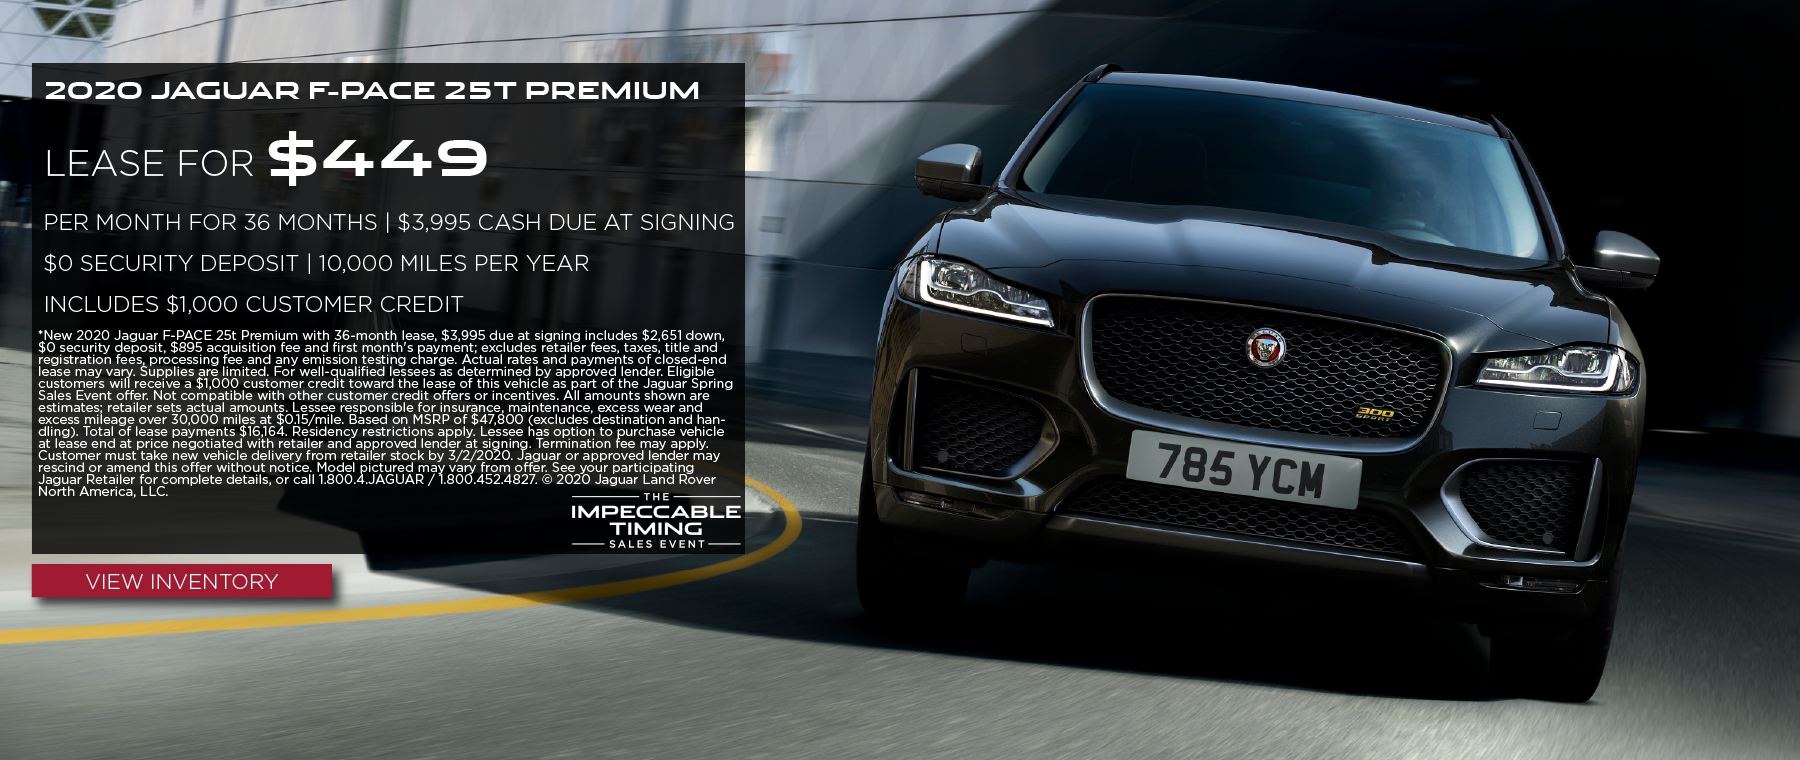 2020 JAGUAR F-PACE 25T PREMIUM. $449 PER MONTH. 36 MONTH LEASE TERM. $3,995 CASH DUE AT SIGNING. INCLUDES $1,000 CUSTOMER CREDIT.  $0 SECURITY DEPOSIT. 10,000 MILES PER YEAR. OFFER ENDS 3/2/2020. VIEW INVENTORY. BLACK JAGUAR F-PACE DRIVING DOWN ROAD IN CITY.